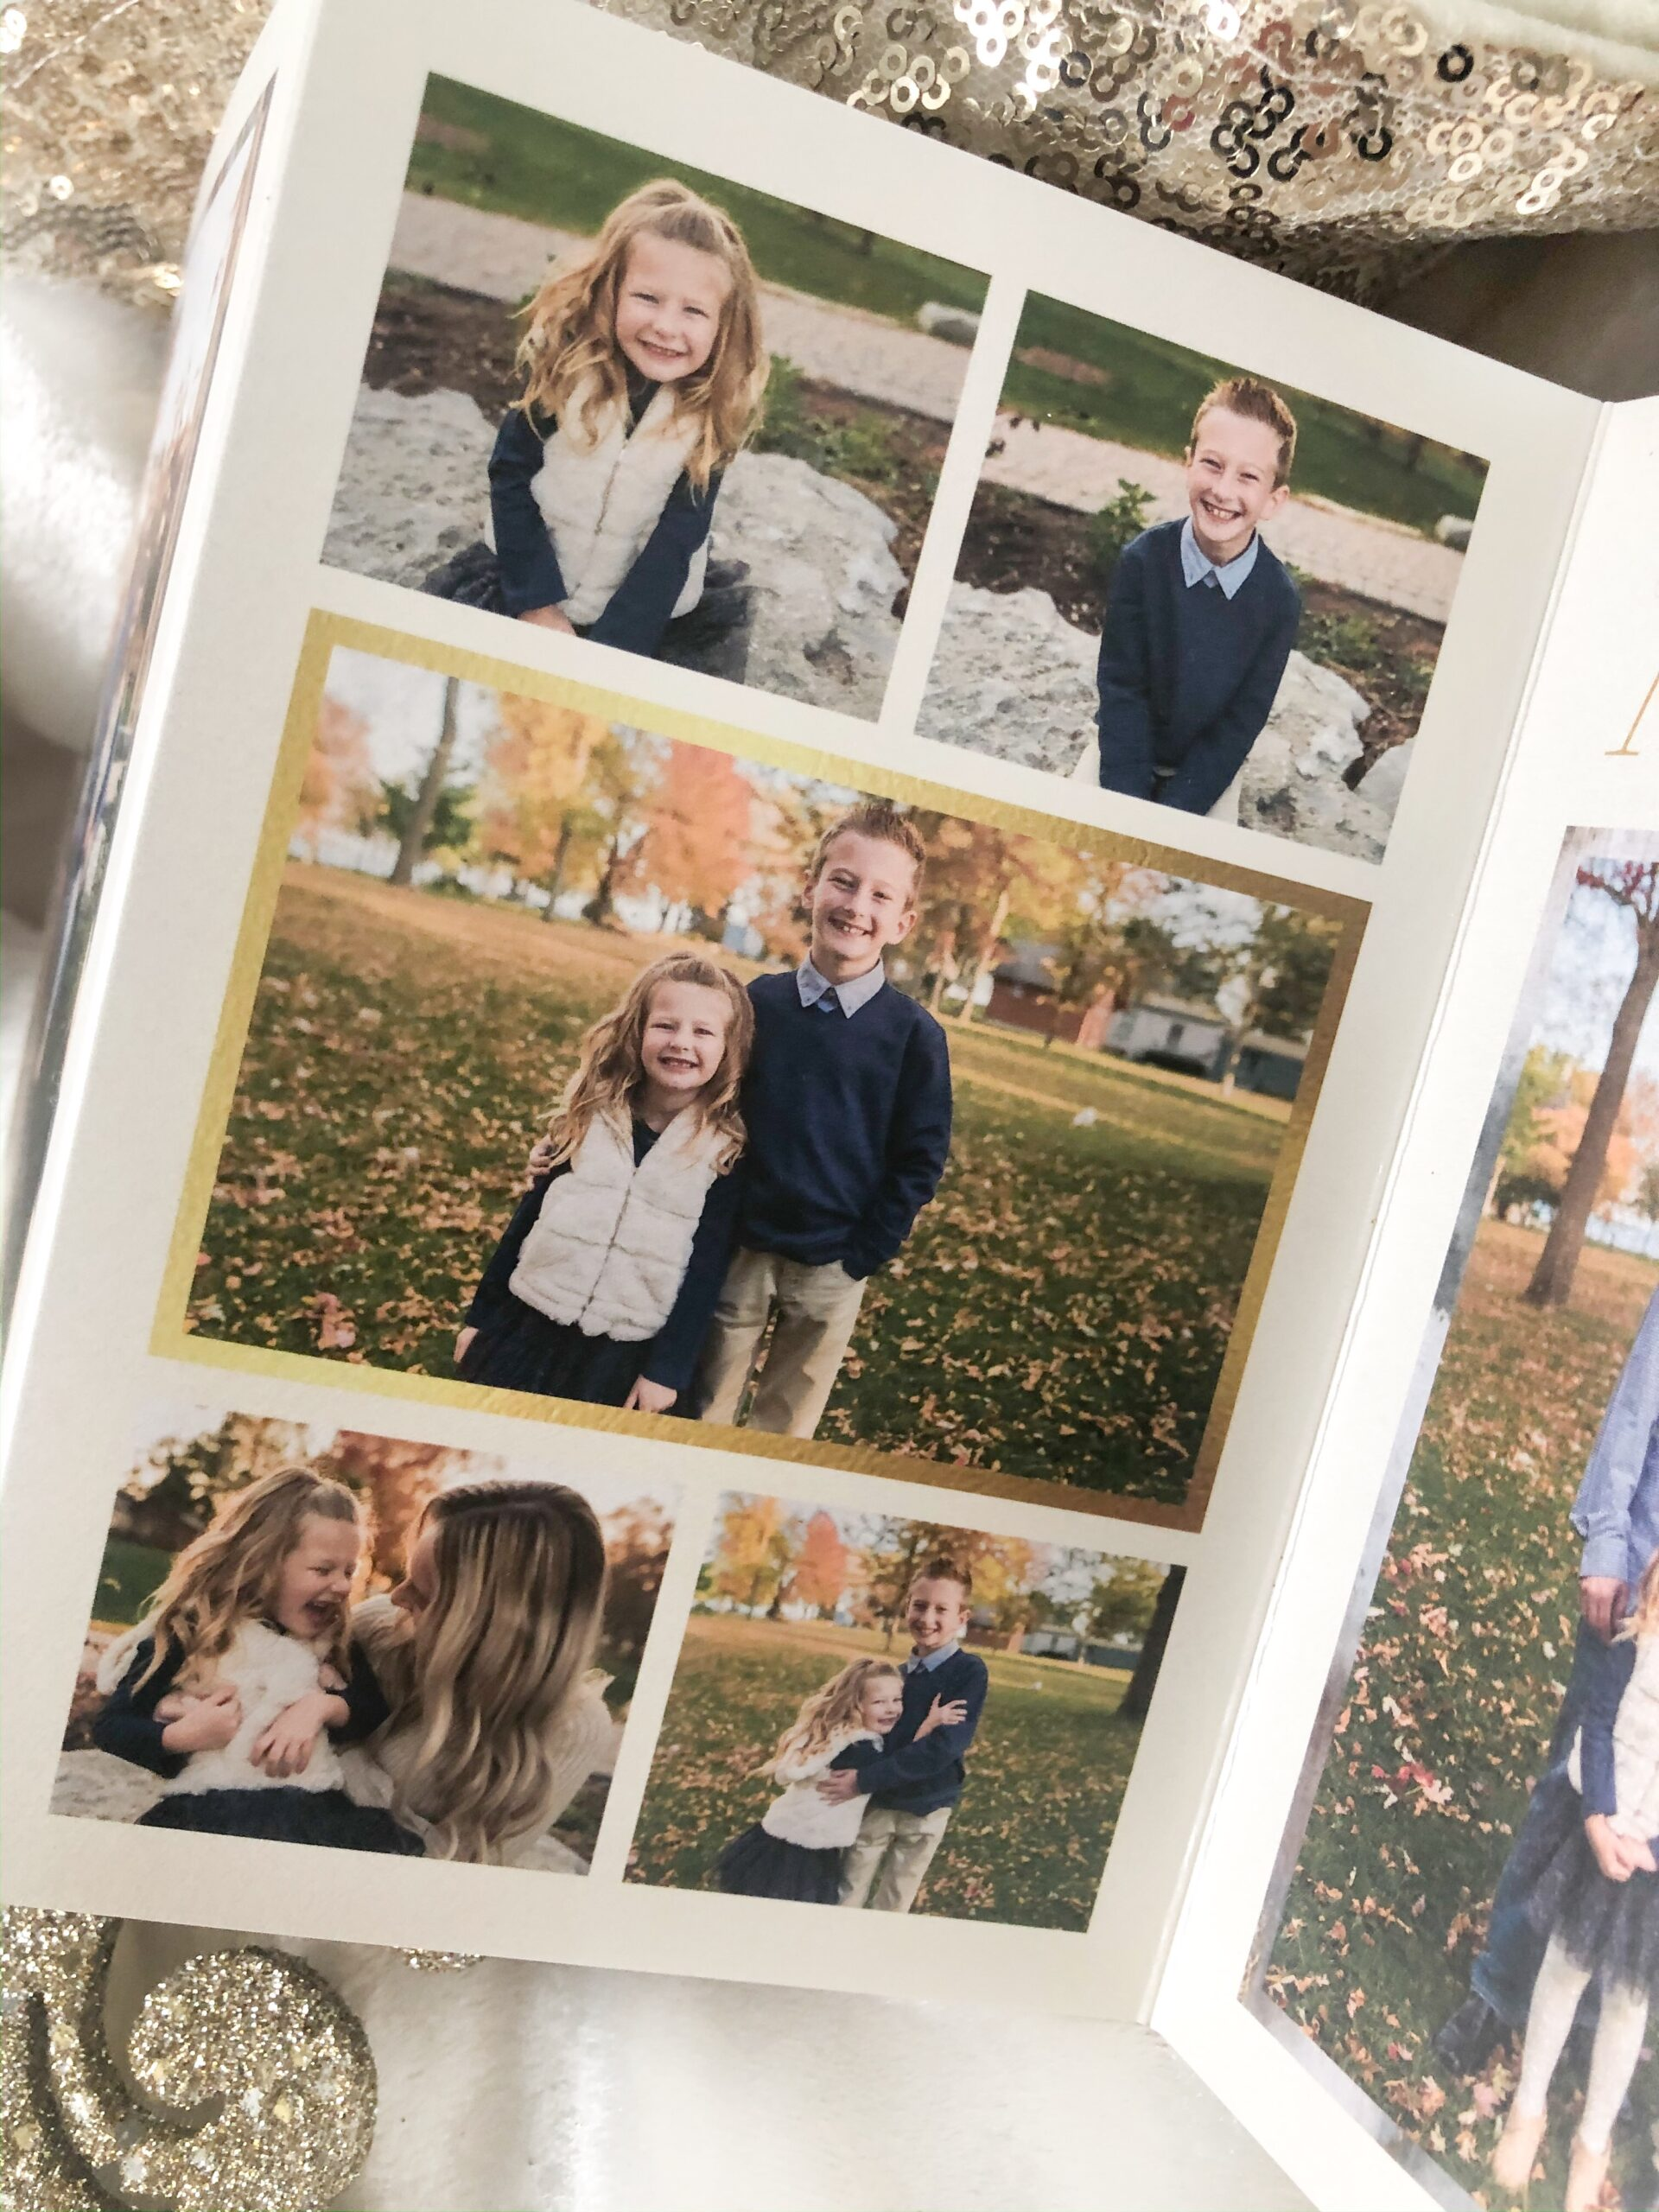 Holiday Cards from Shutterfly on livin' Life with Style